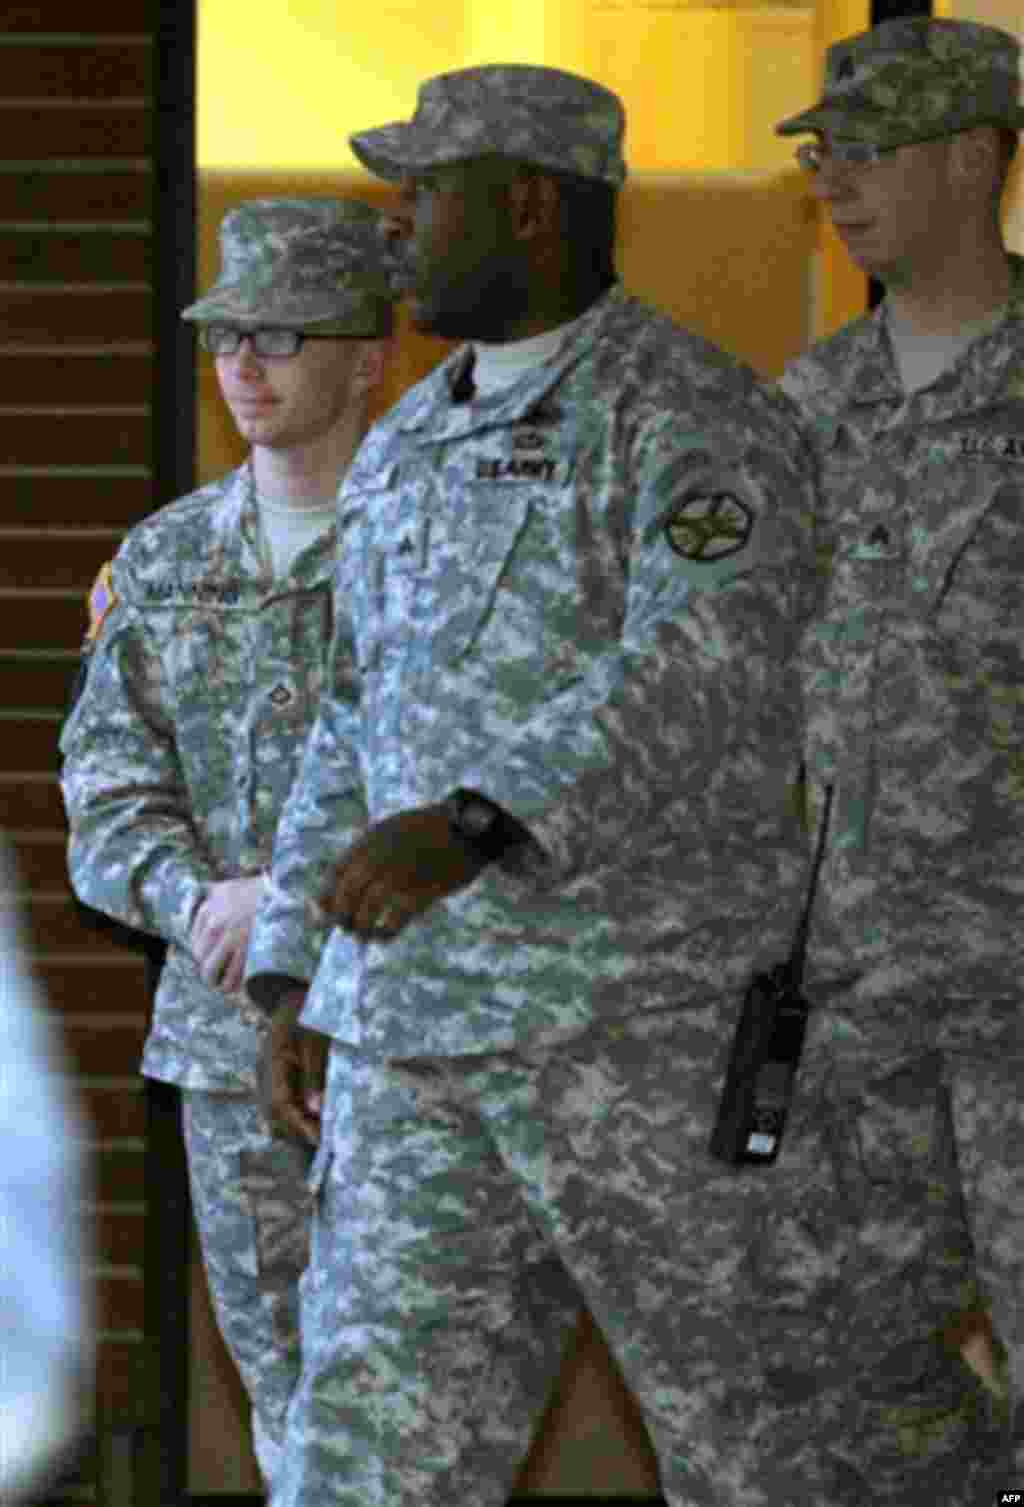 Army Pfc. Bradley Manning, left, is escorted out of a courthouse at Fort Meade, Md., Friday, Dec. 16, 2011, after the first day of a military hearing that will determine if he should face court-martial for his alleged role in the WikiLeaks classified leak